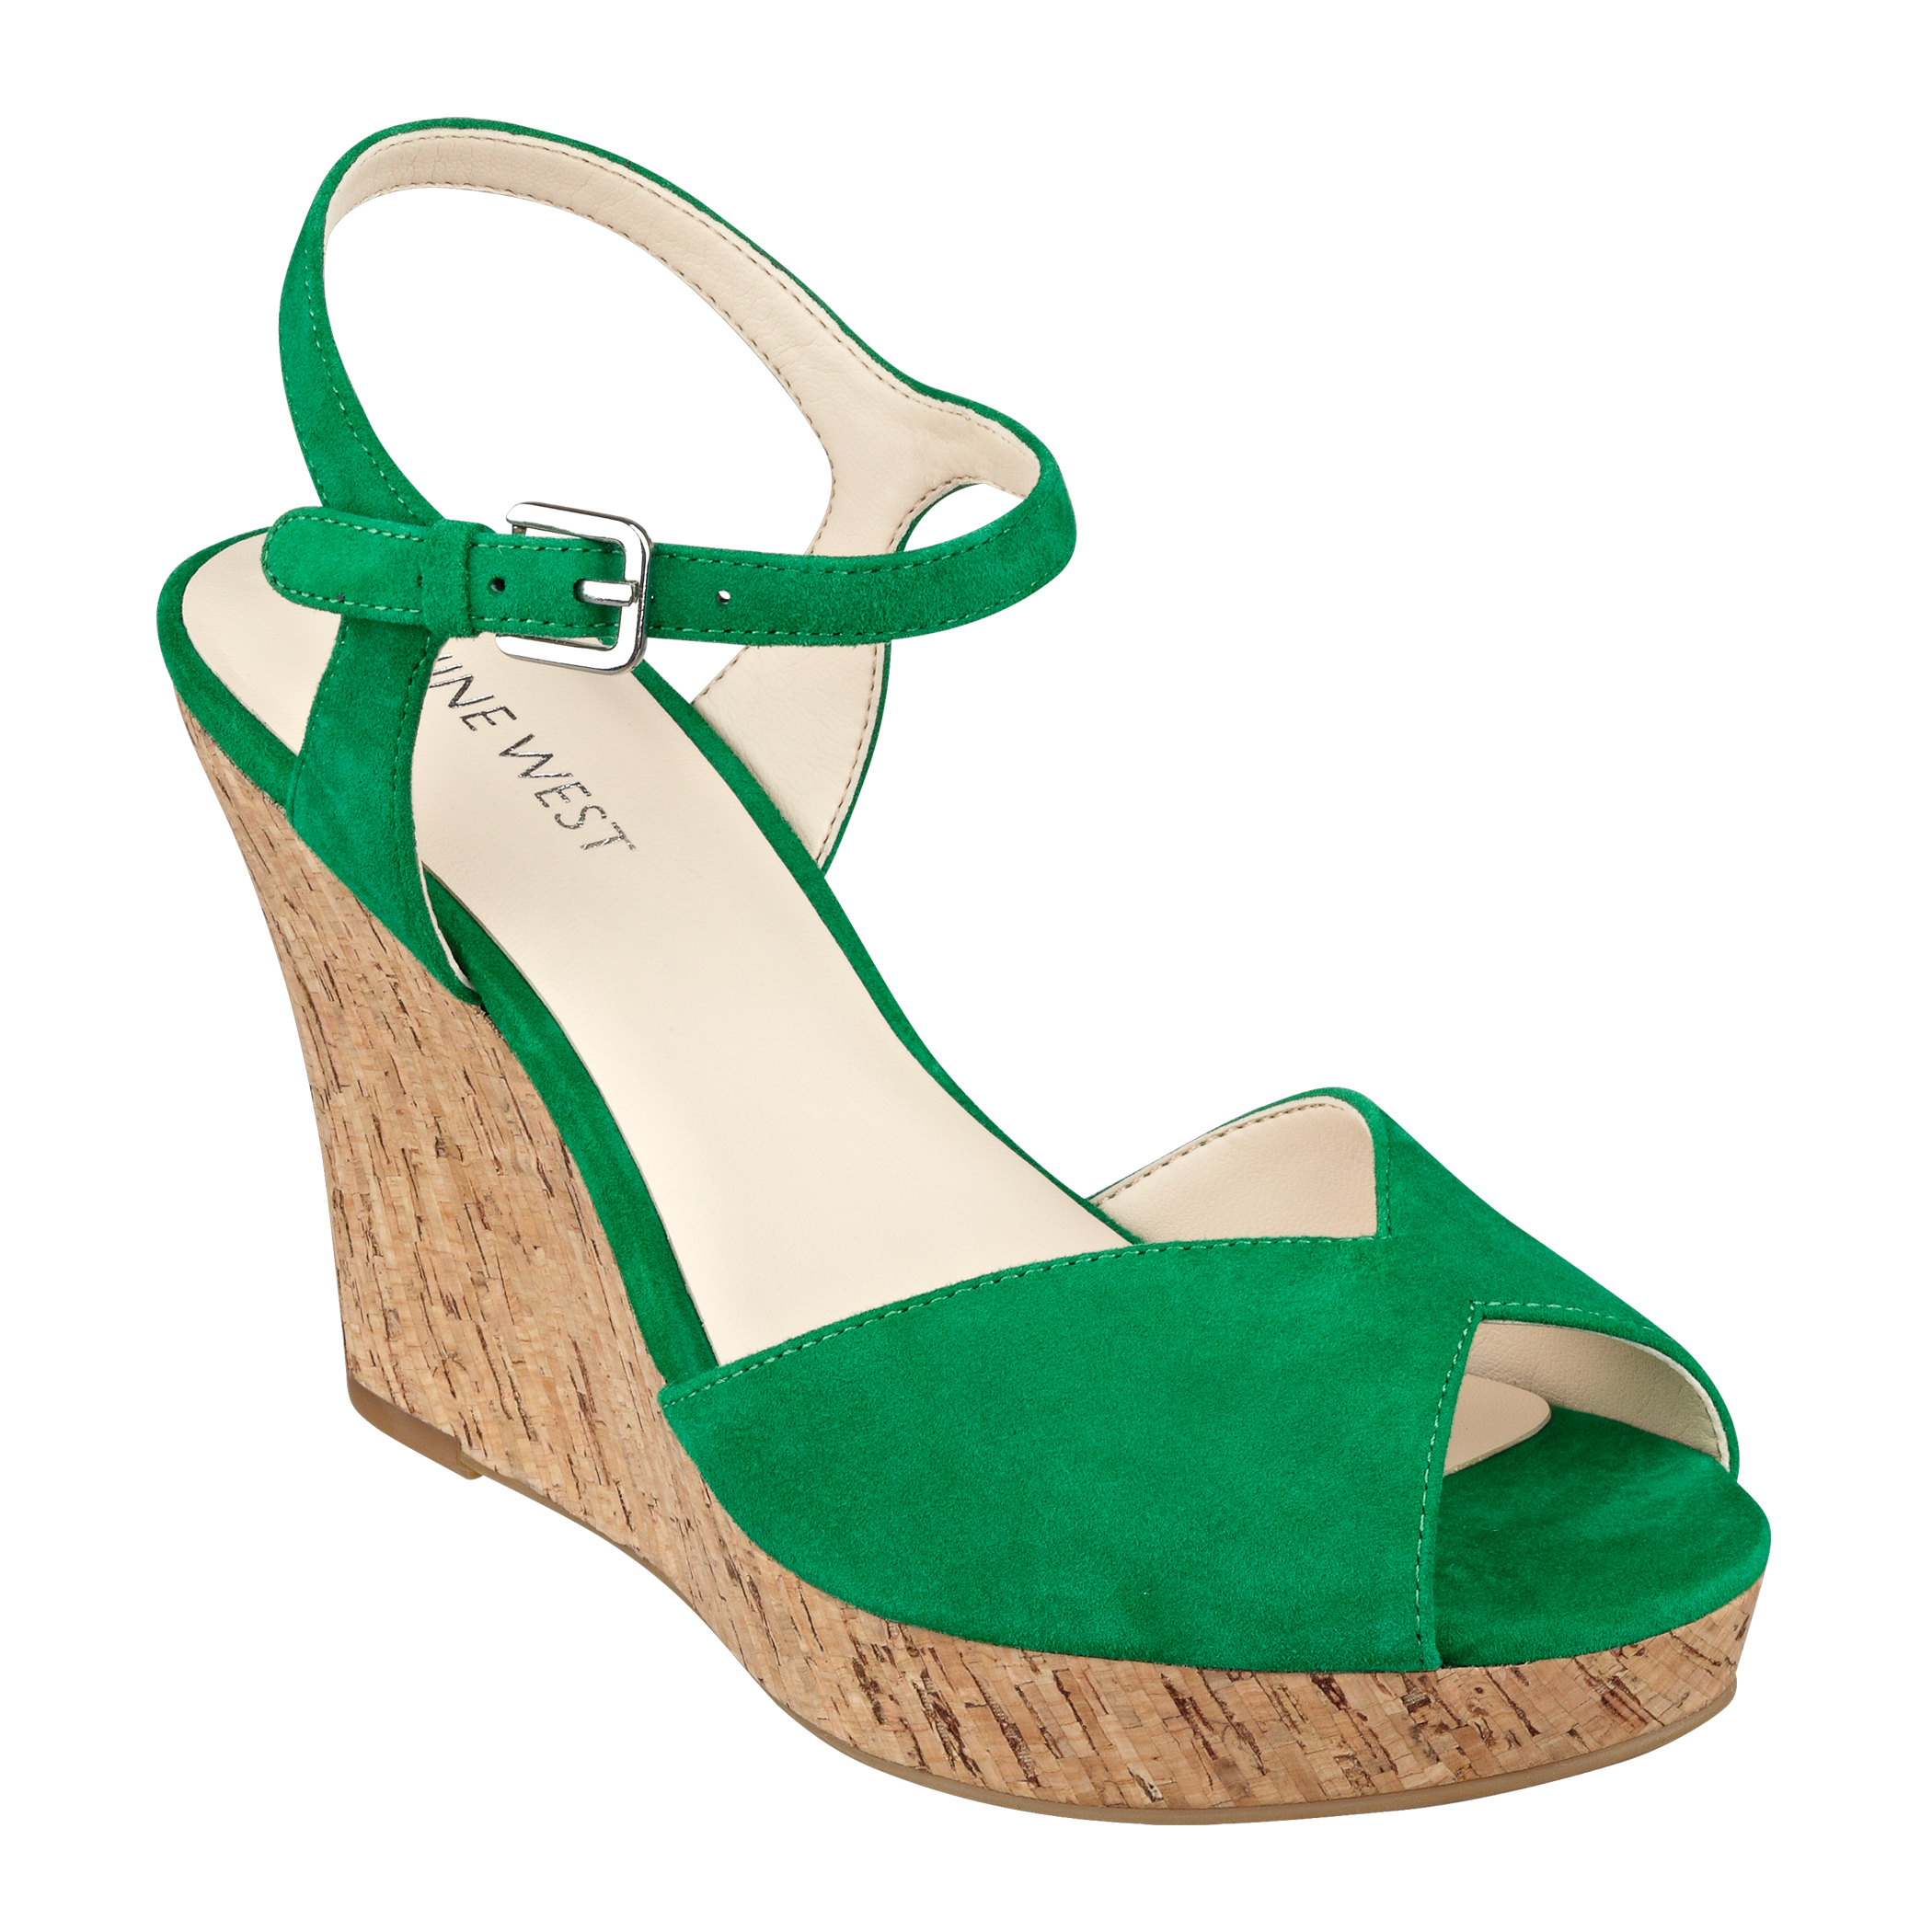 Nine west Bigeasy Open Toe Wedge Sandals in Green | Lyst